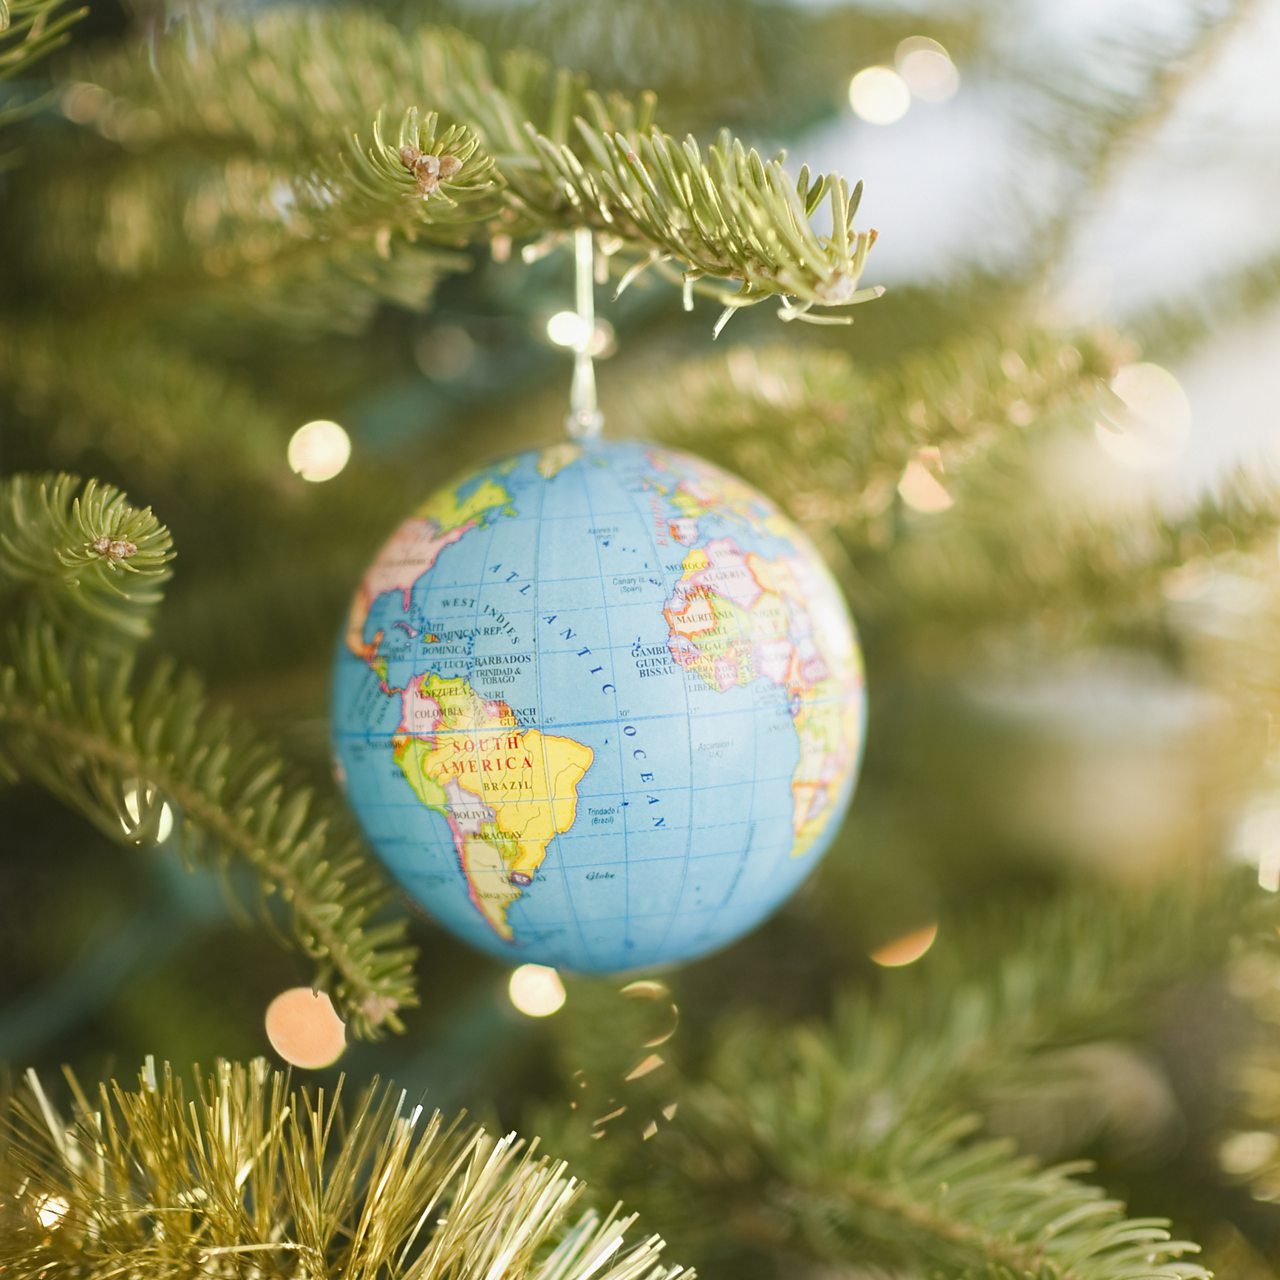 How to be more eco-friendly at Christmas